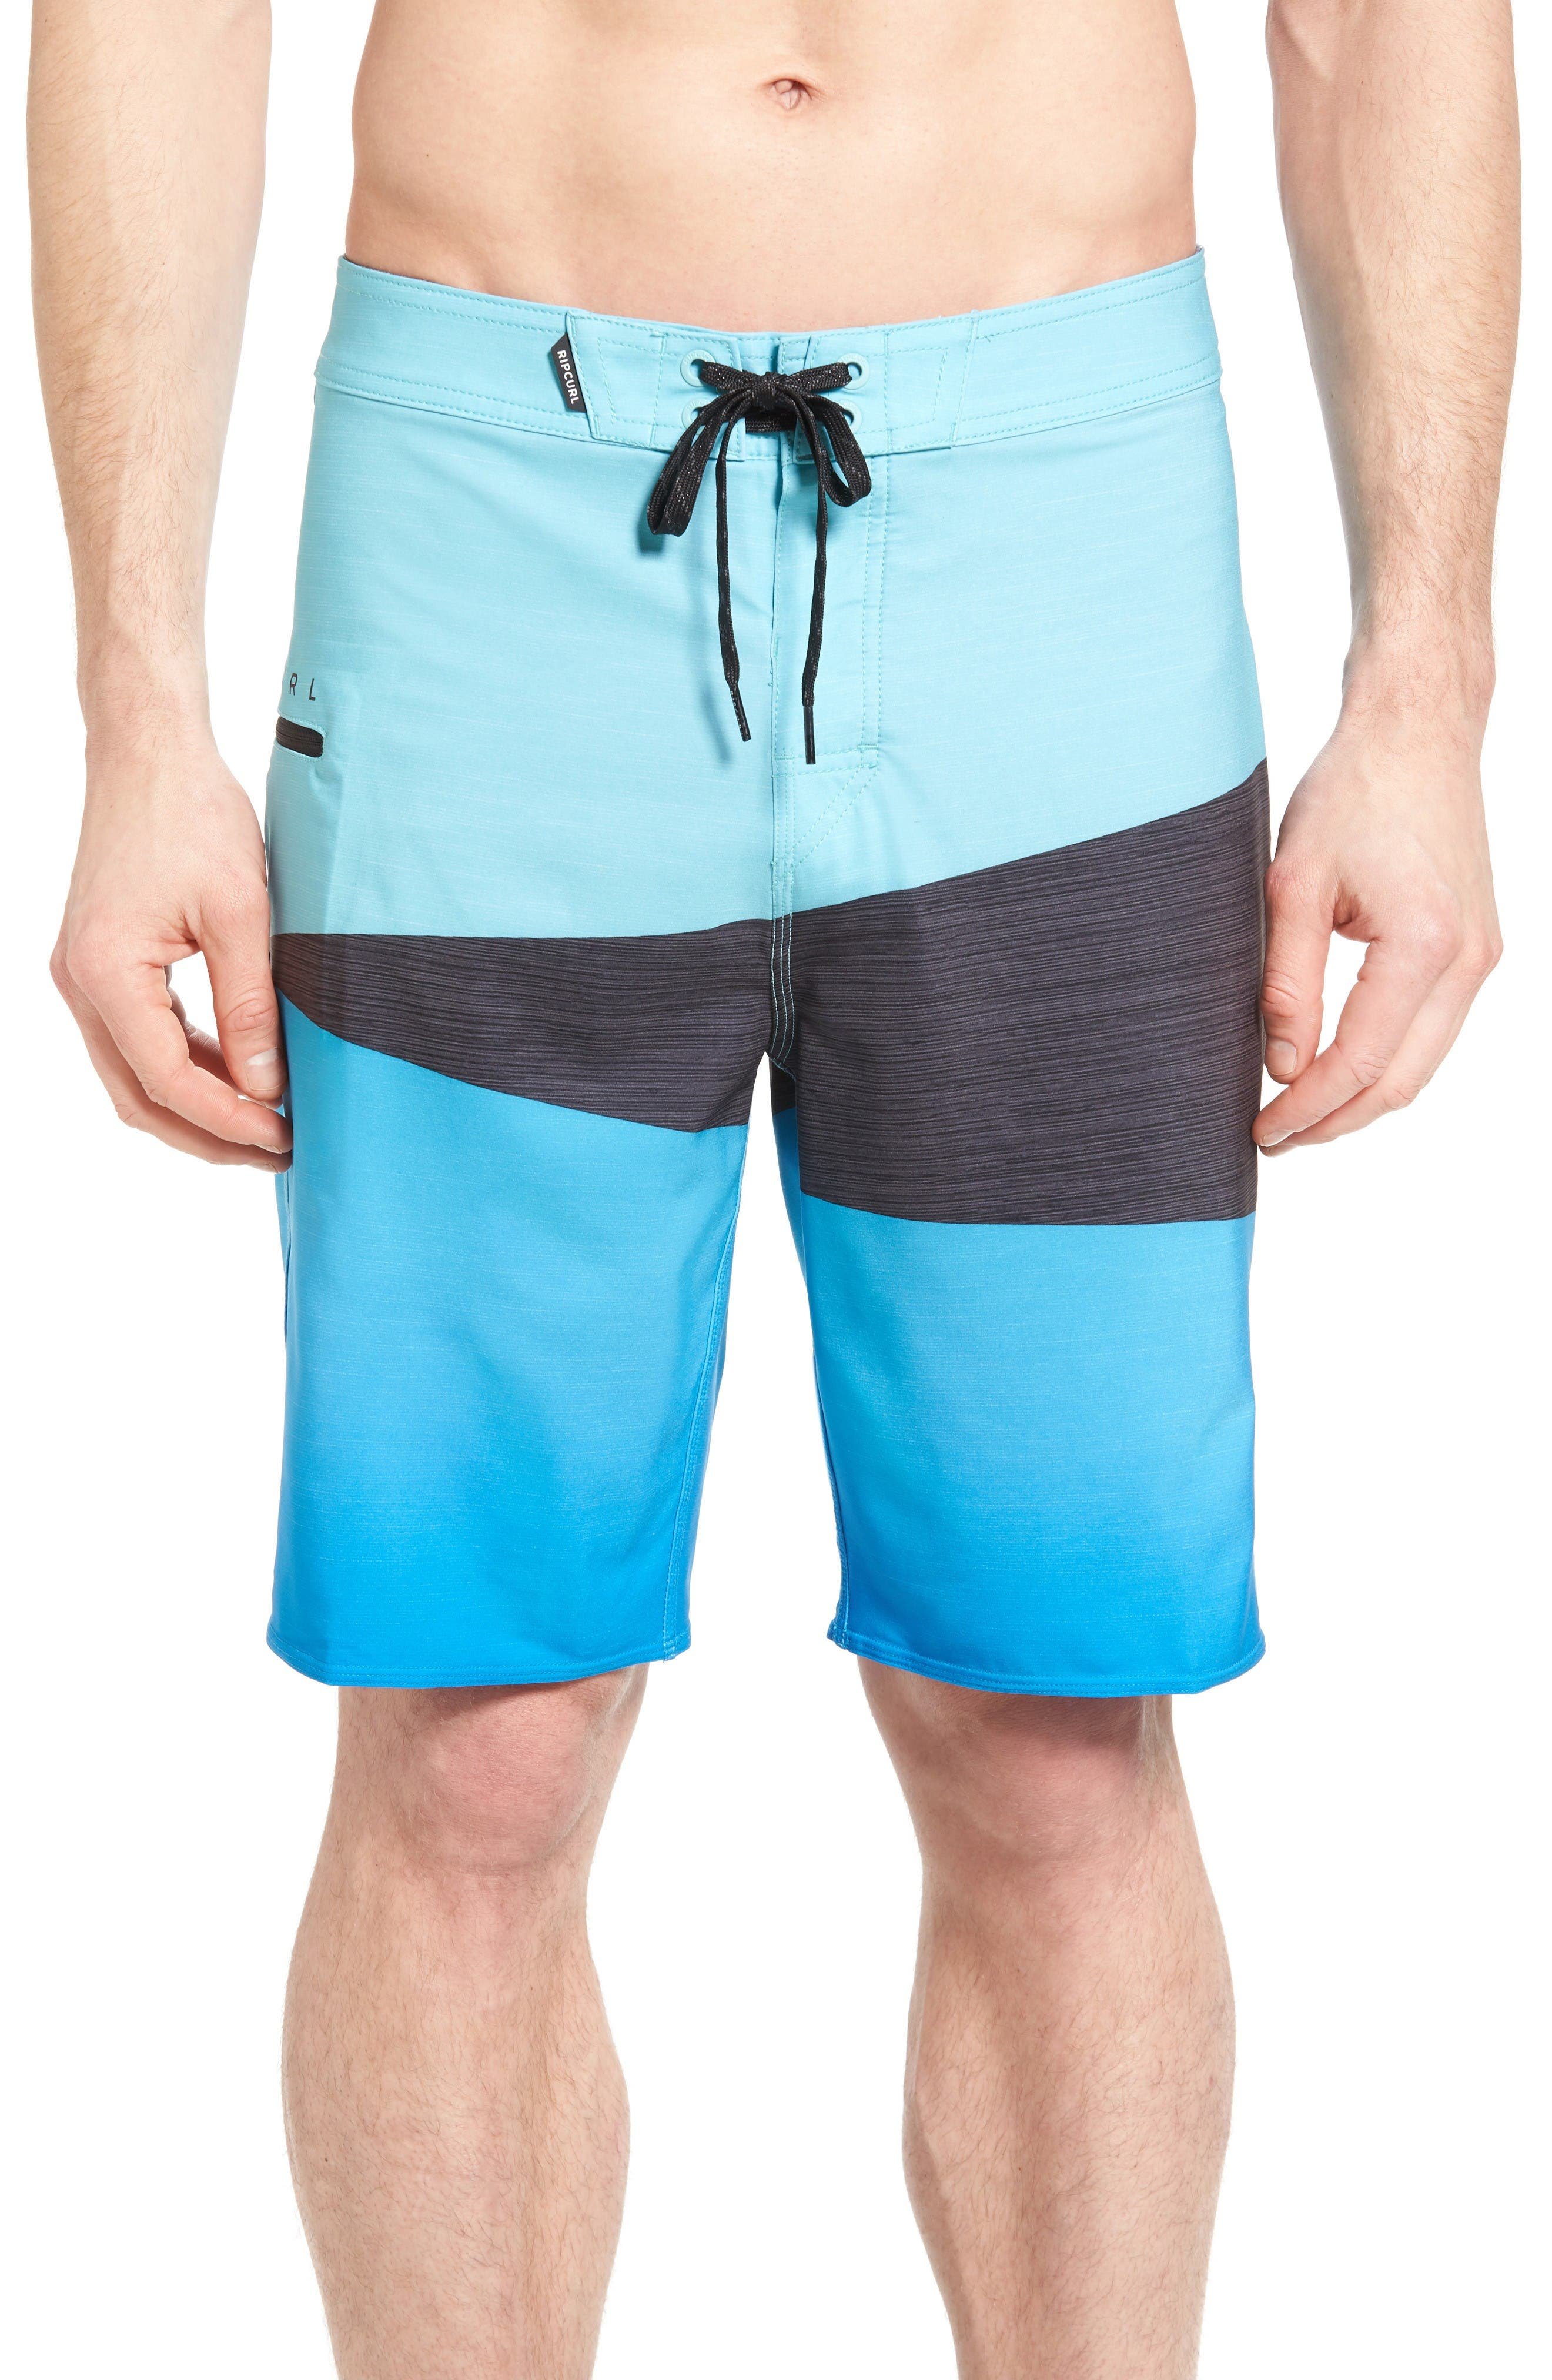 Alternate Image 1 Selected - Rip Curl Mirage Wedge Board Shorts